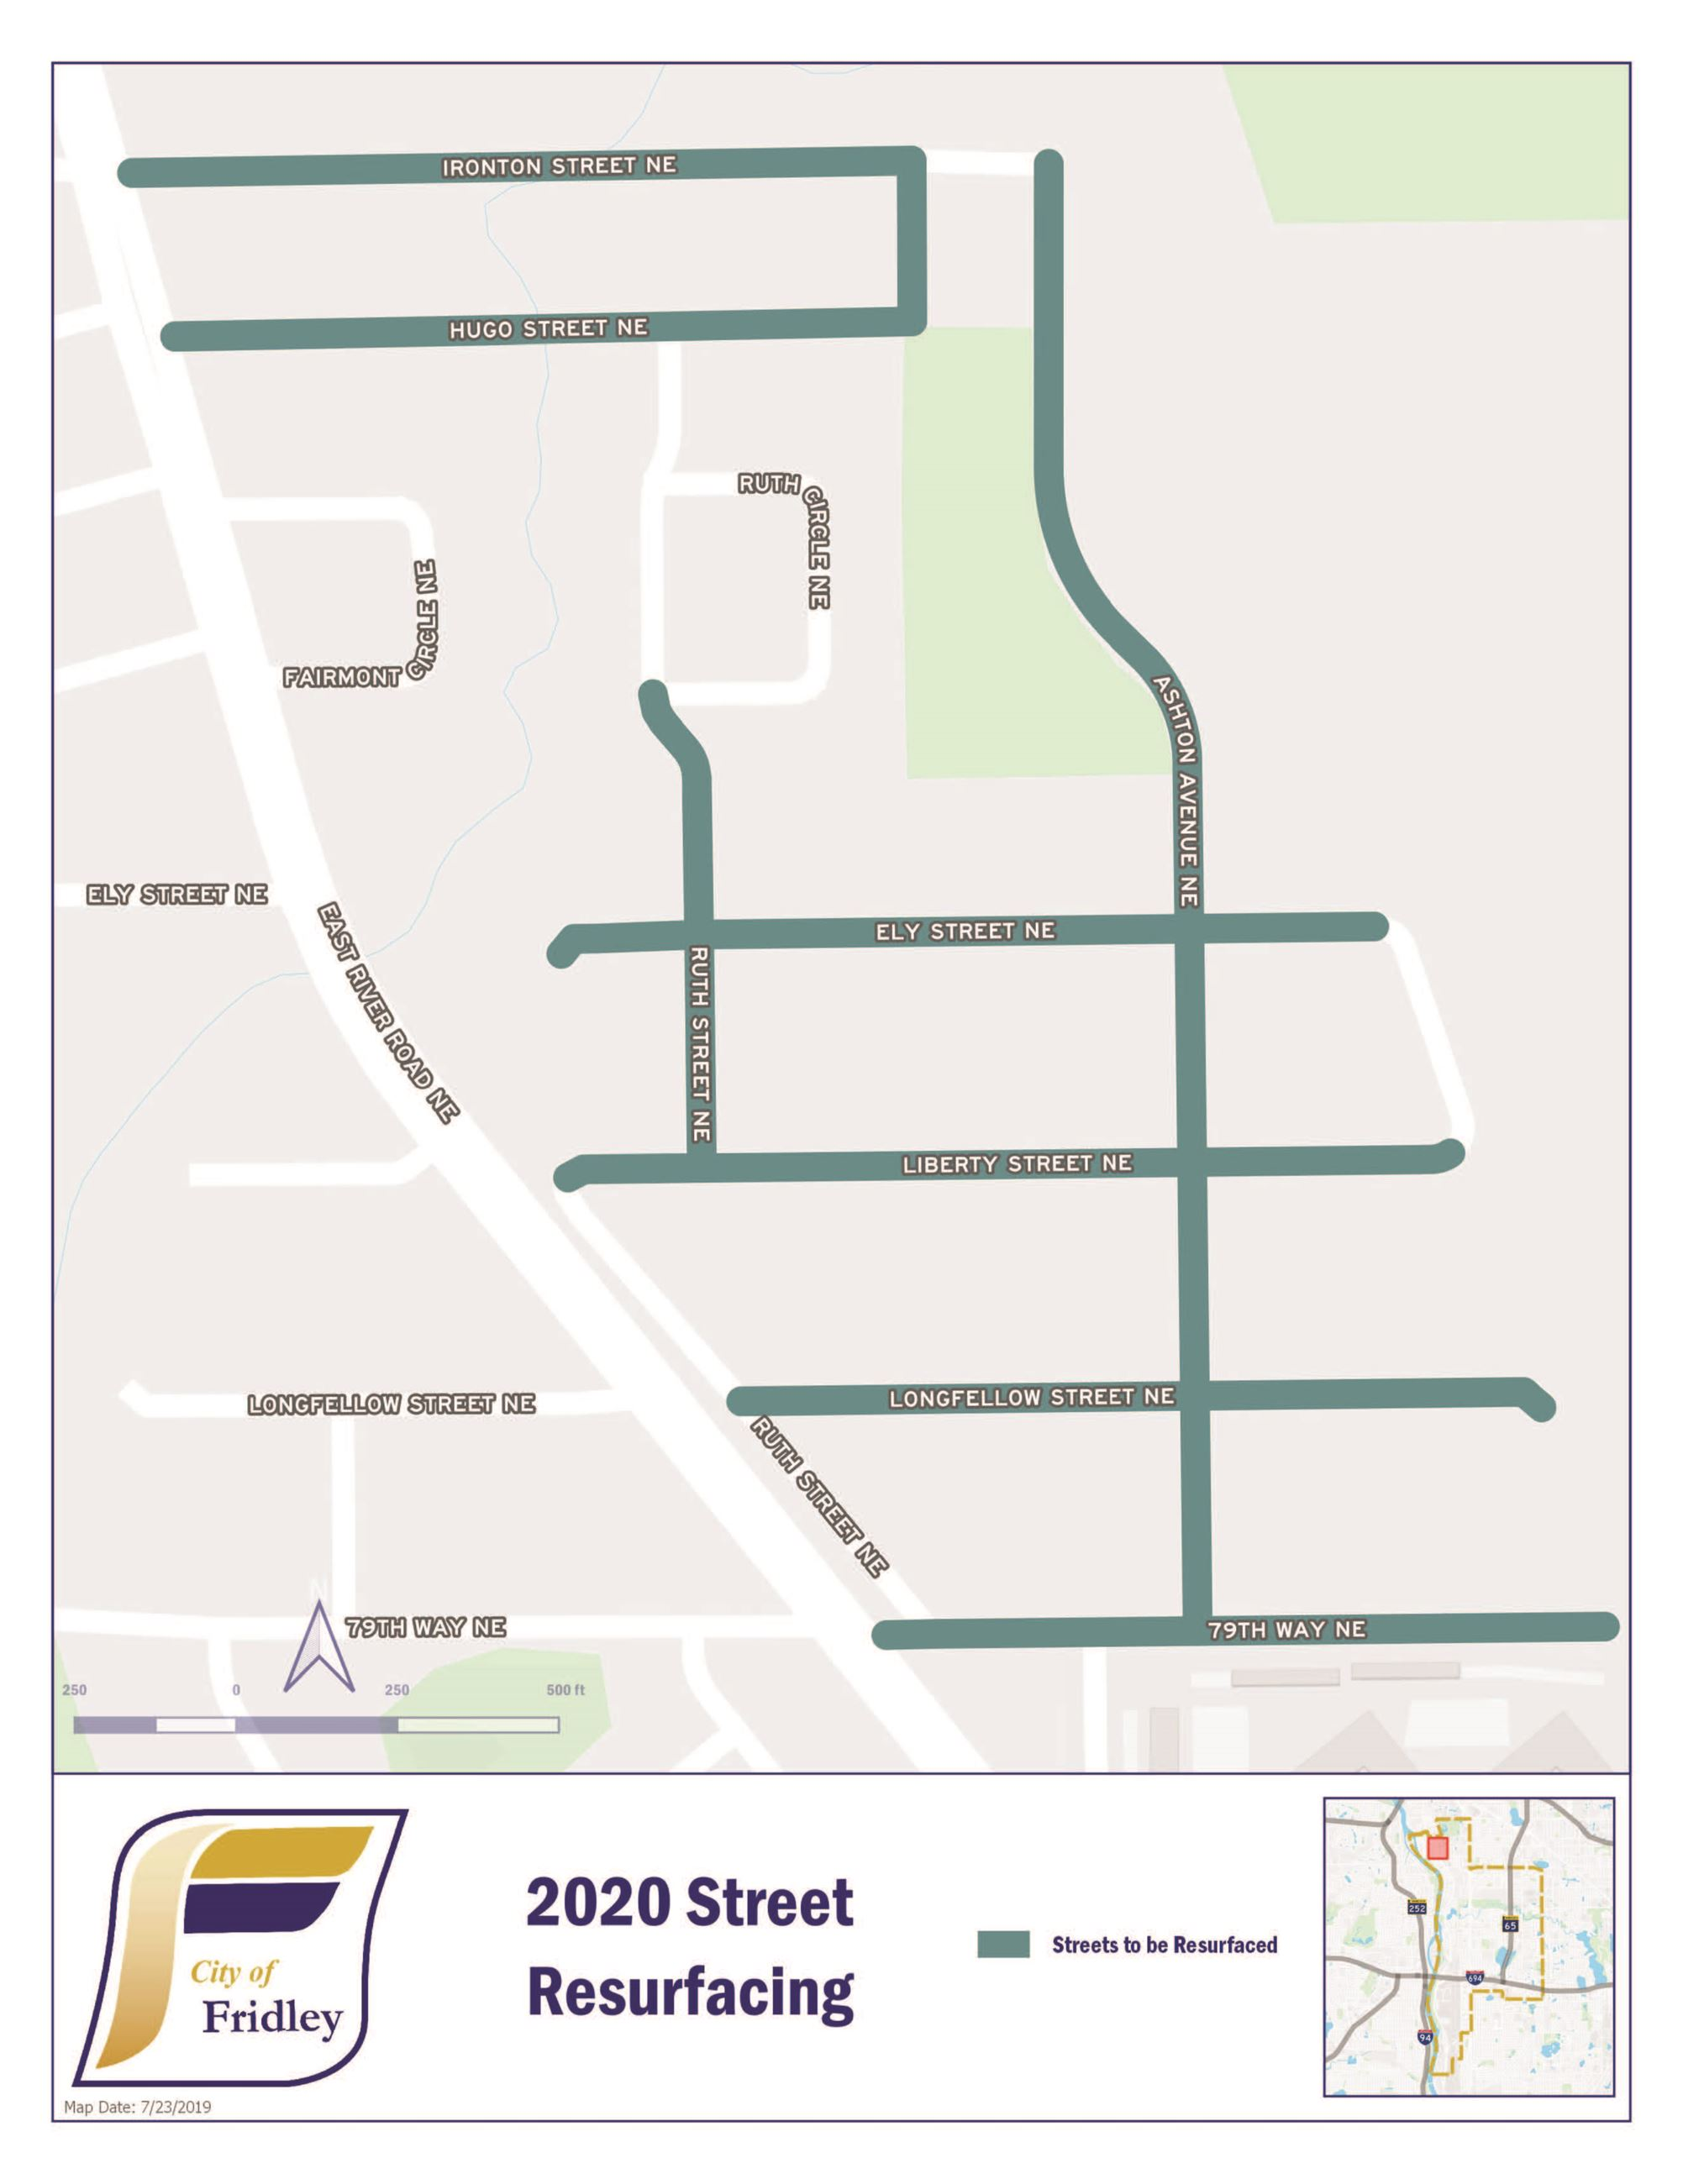 ST2020-01 Street Rehabilitation Project Map 190806